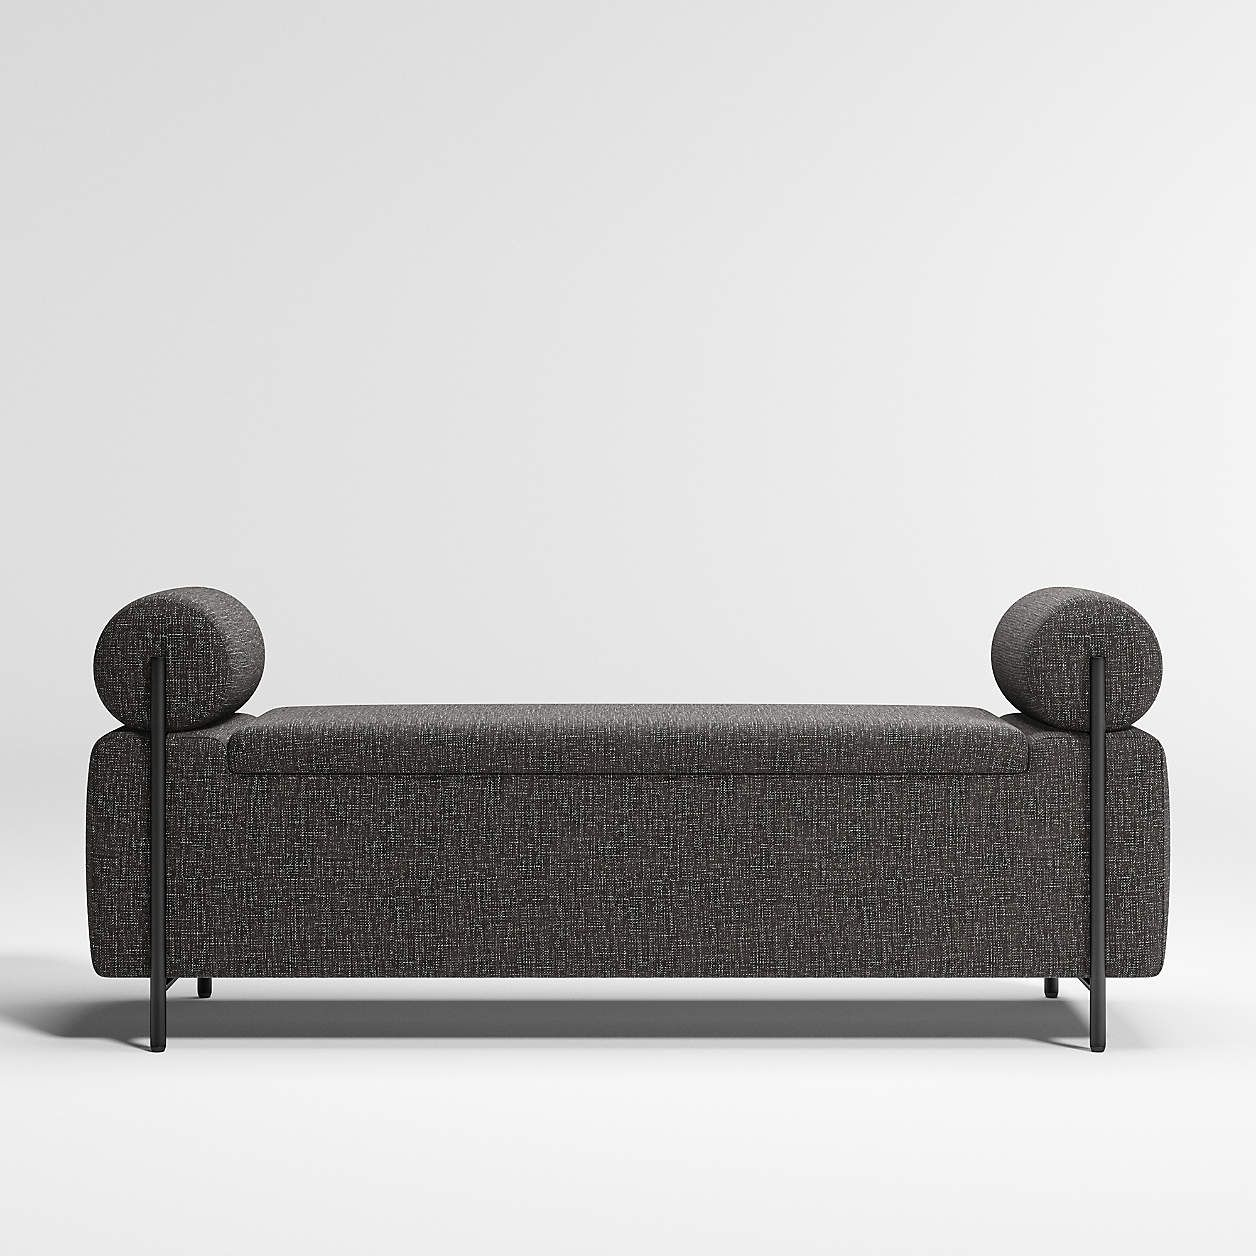 A cushioned bench that doubles as a storage space, which is currently for sale at Crate & Barrel